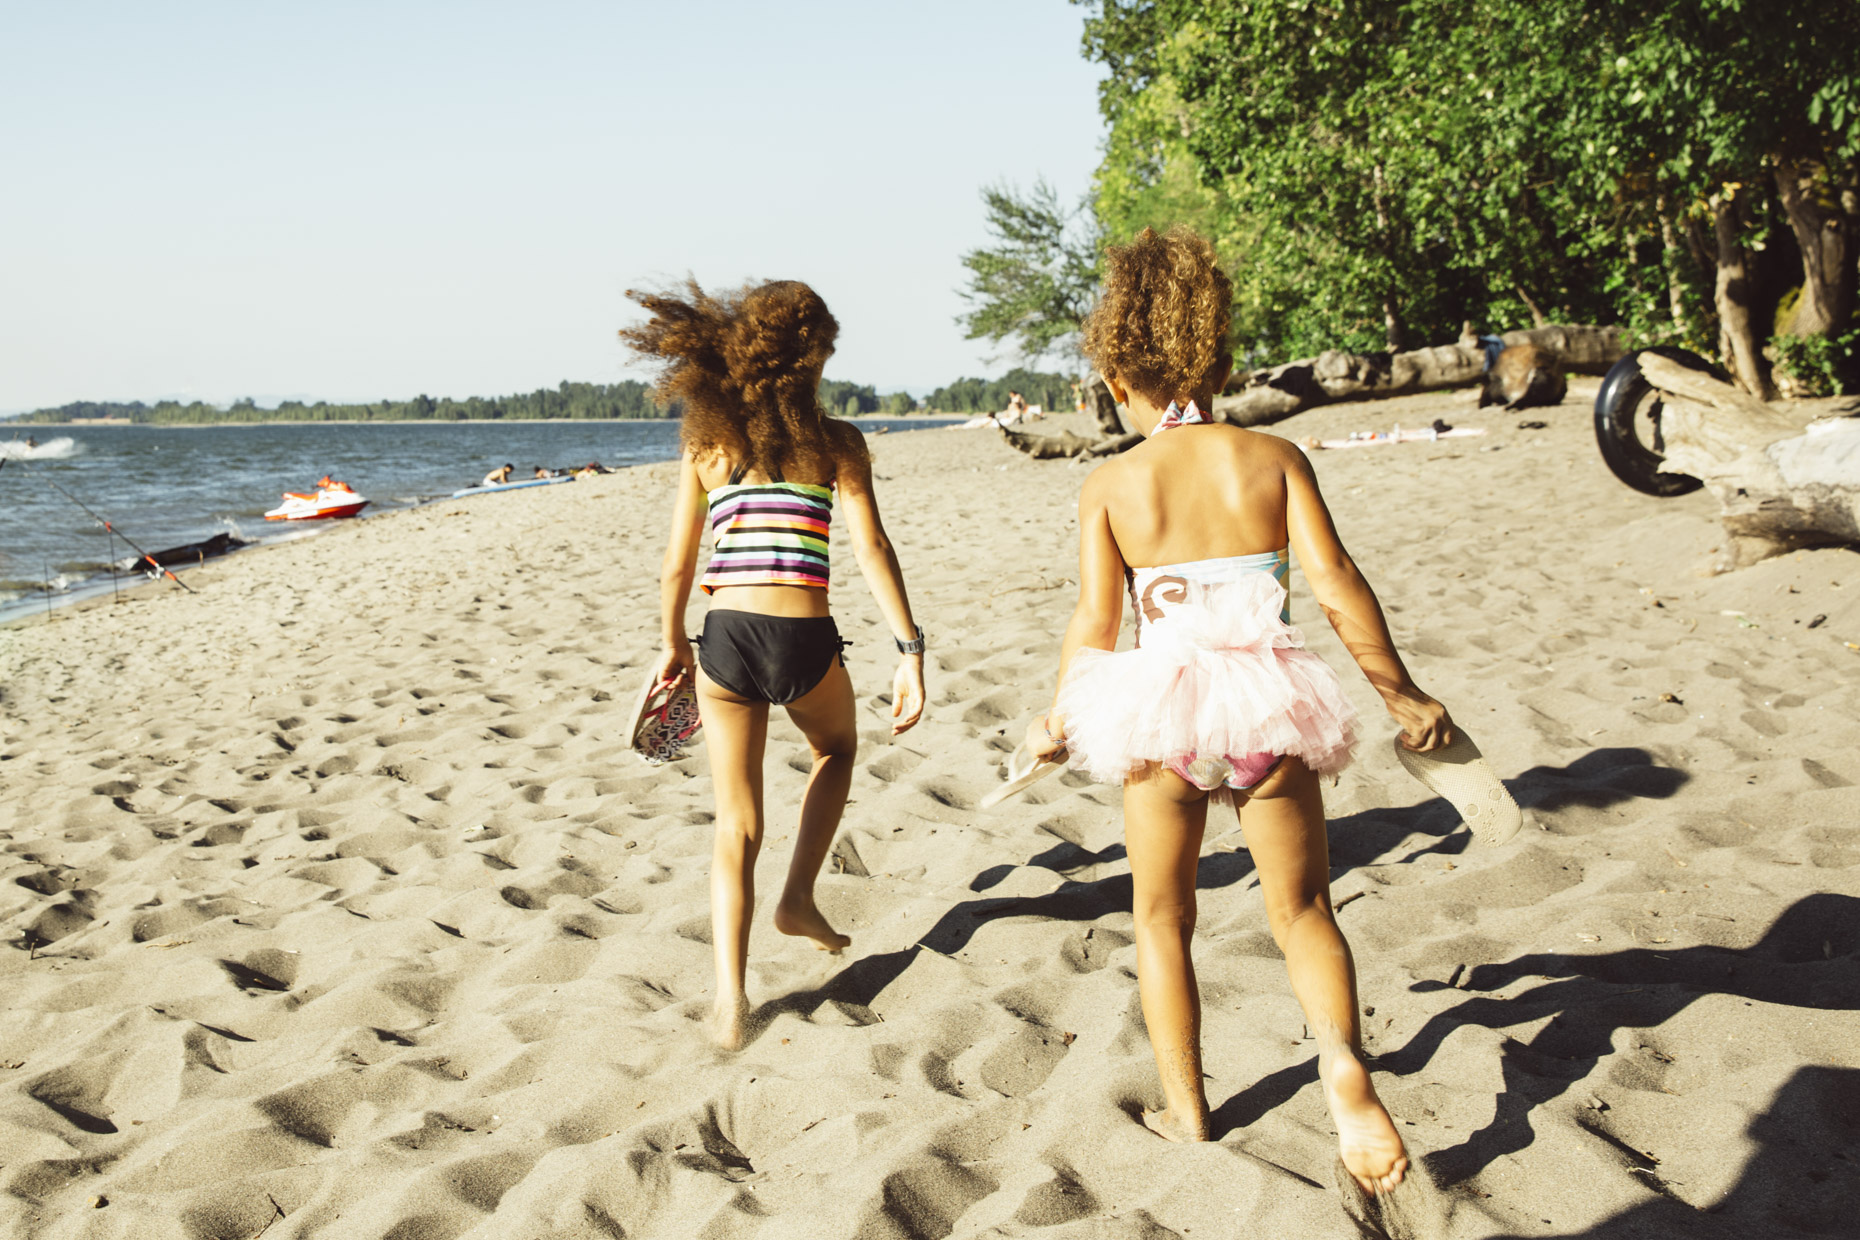 Girls in swimsuits and tutu running on beach